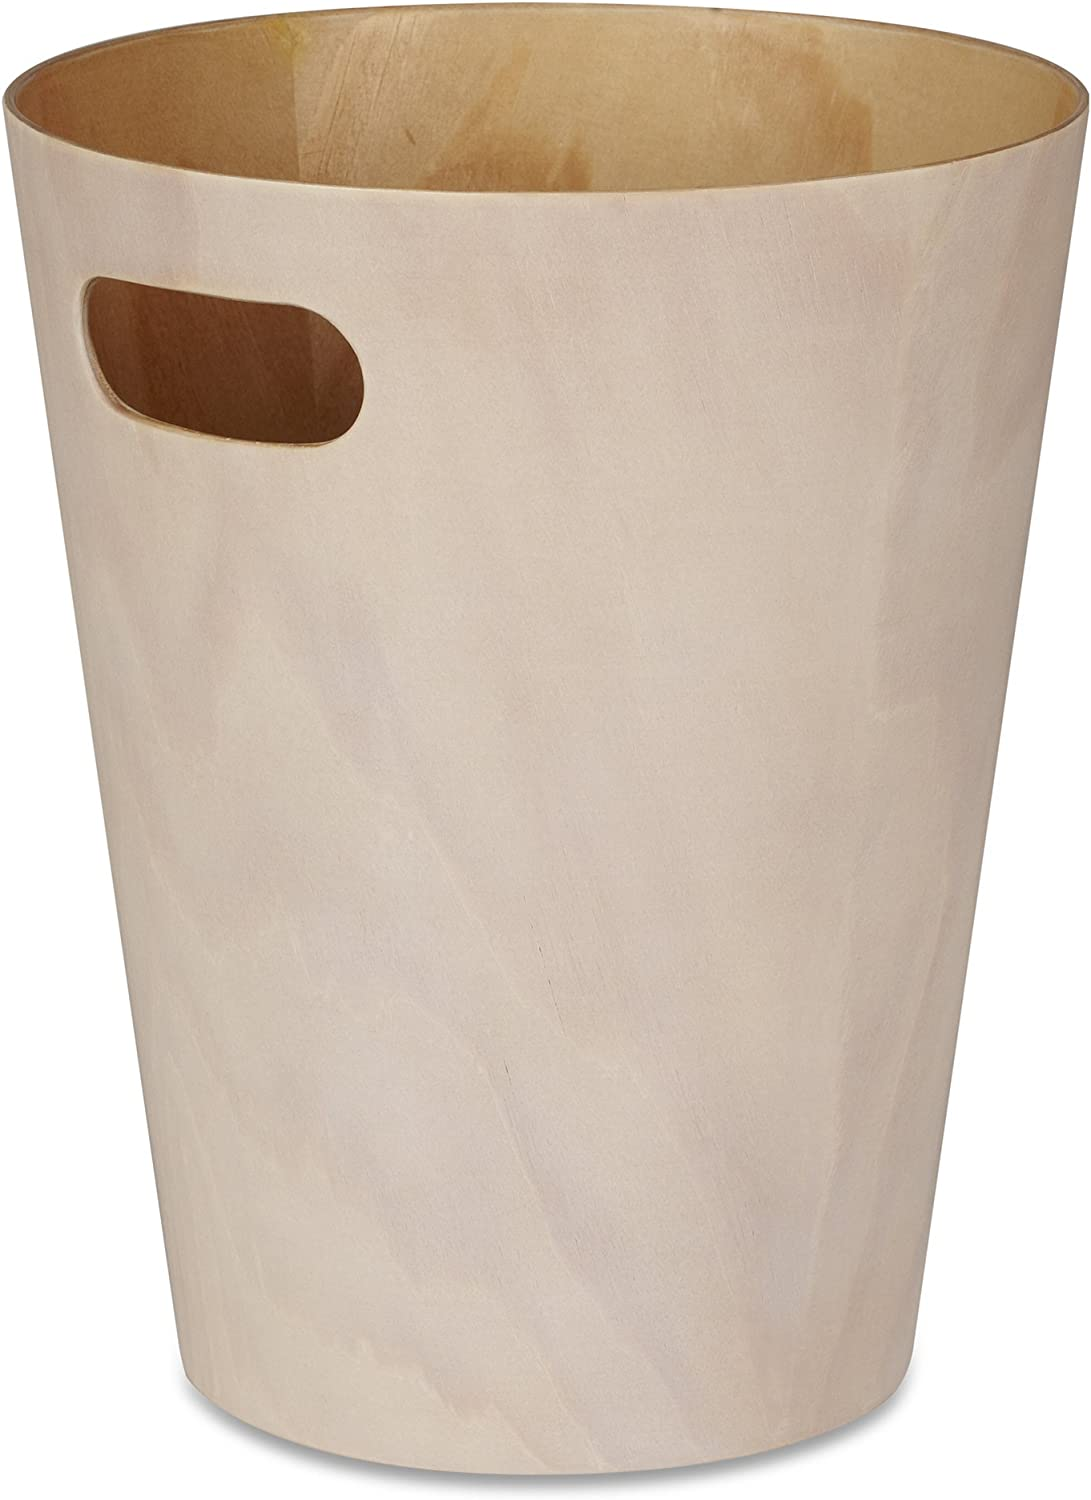 Umbra Woodrow, 2 Gallon Modern Wooden Trash Can Wastebasket or Recycling Bin for Home or Office, White